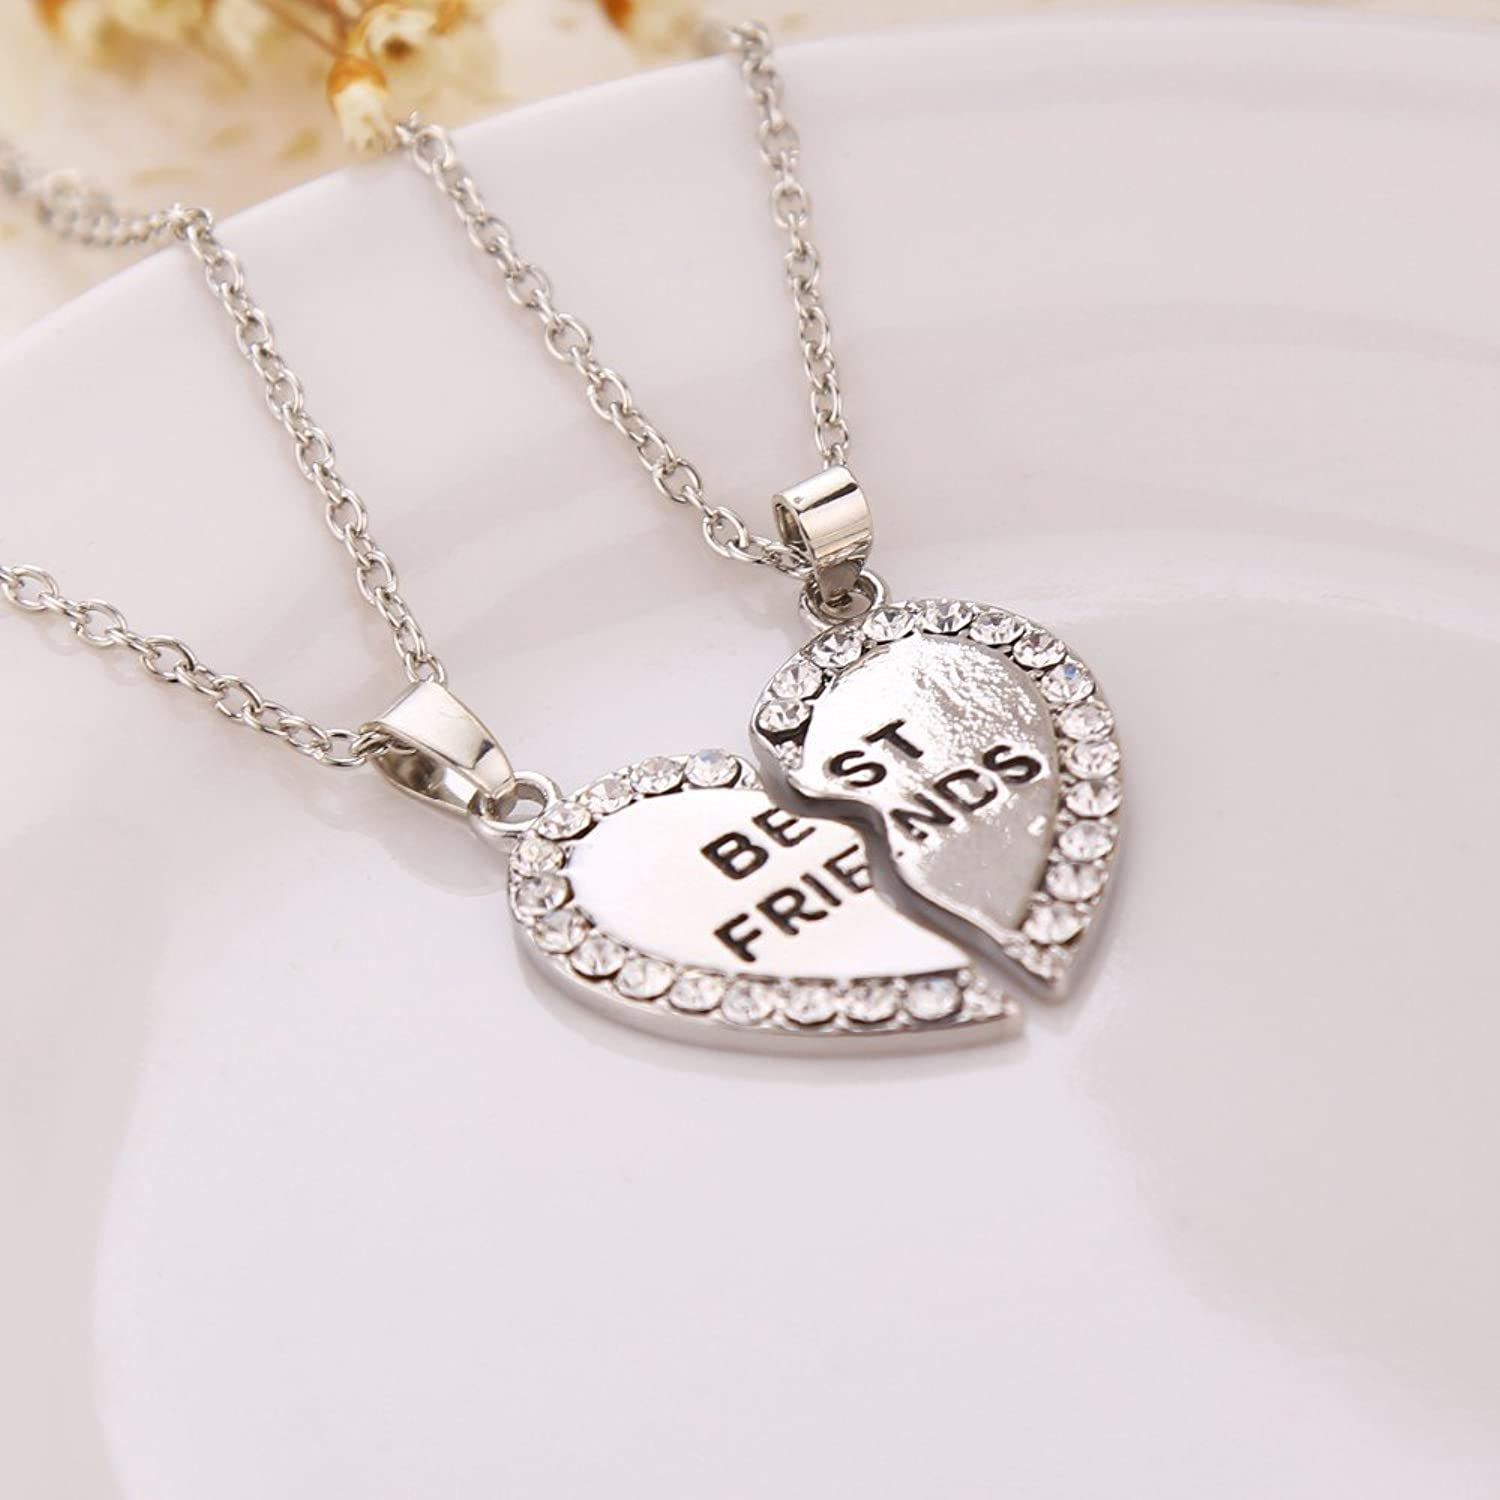 two dp tarnish jewelry friends special gift half necklaces best fashion guaranteed lifetime heart friend resistant pendants lockets life necklace for gold